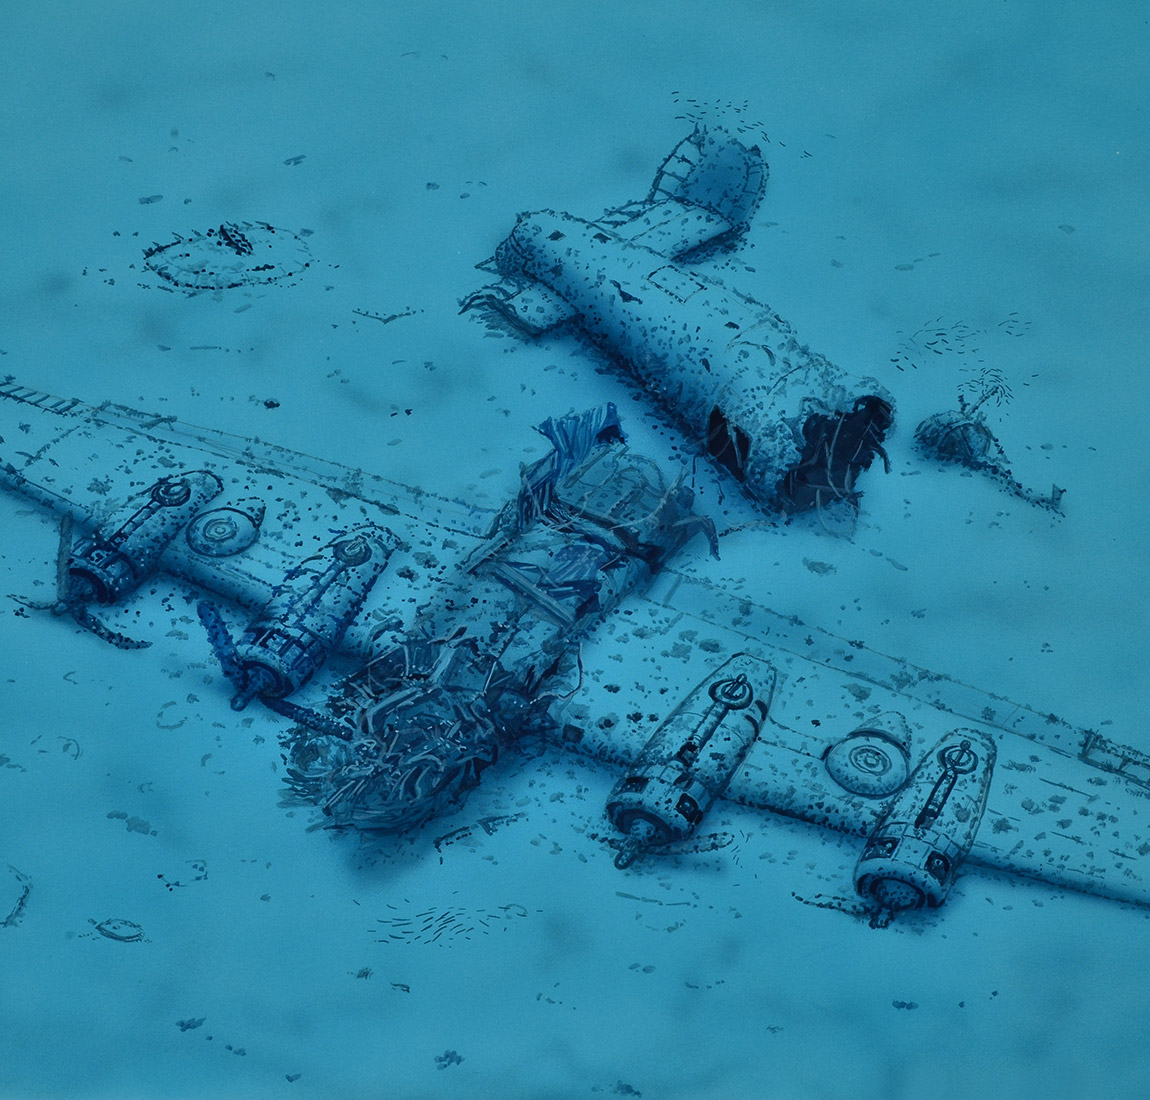 B-24 Liberator Lady Luck - Diving Vis